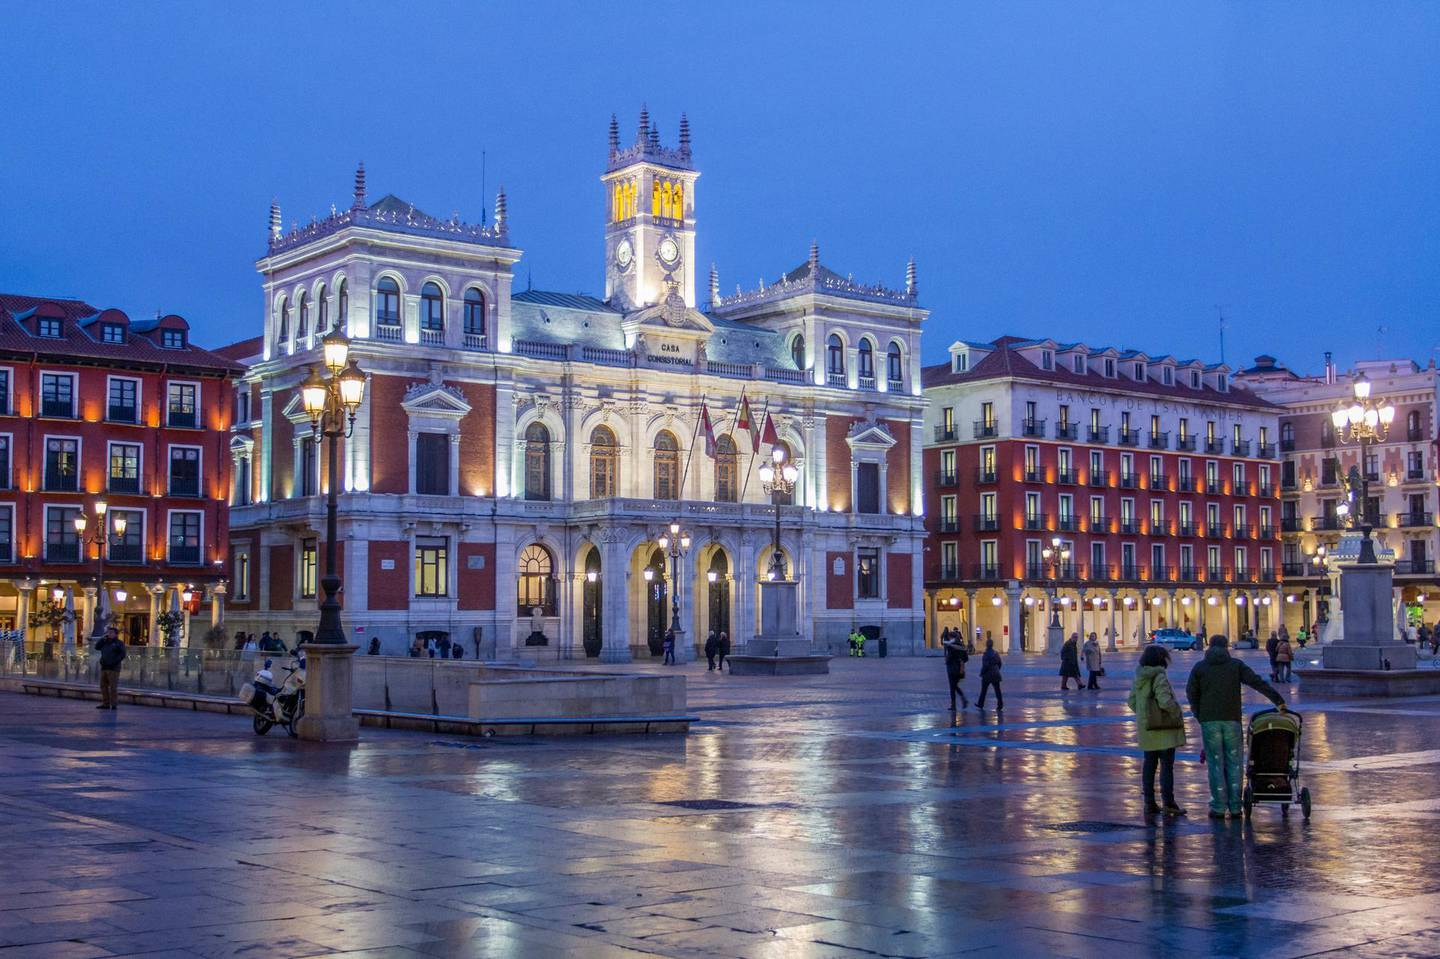 Plaza Mayor (Main Square) with the Town Hall in Valladolid. Getty Images